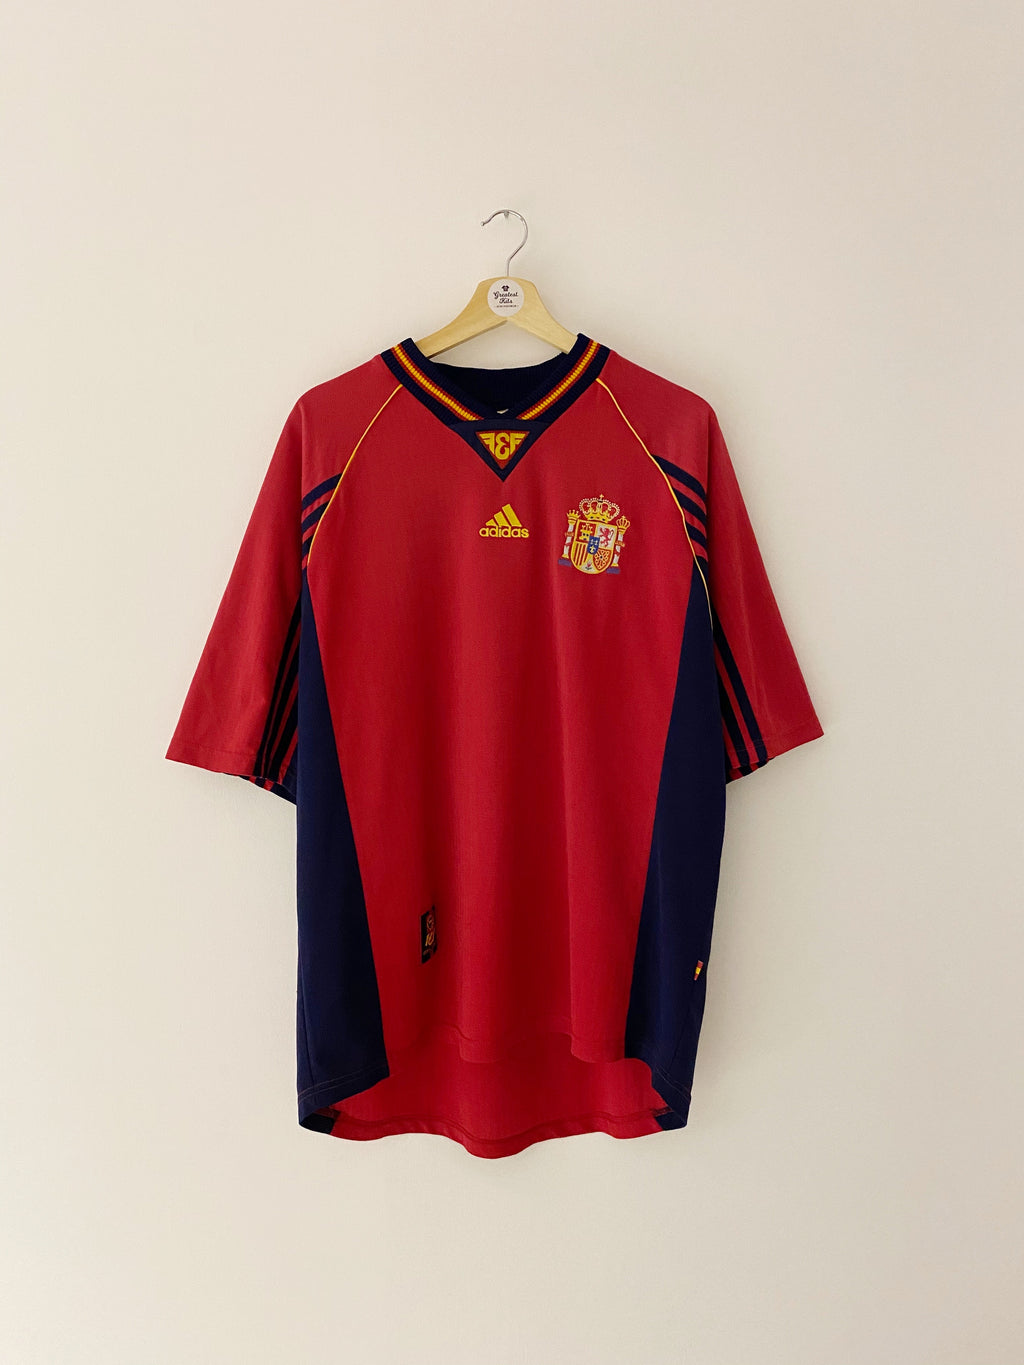 1998/99 Spain Home Shirt #4 (XL) 8.5/10